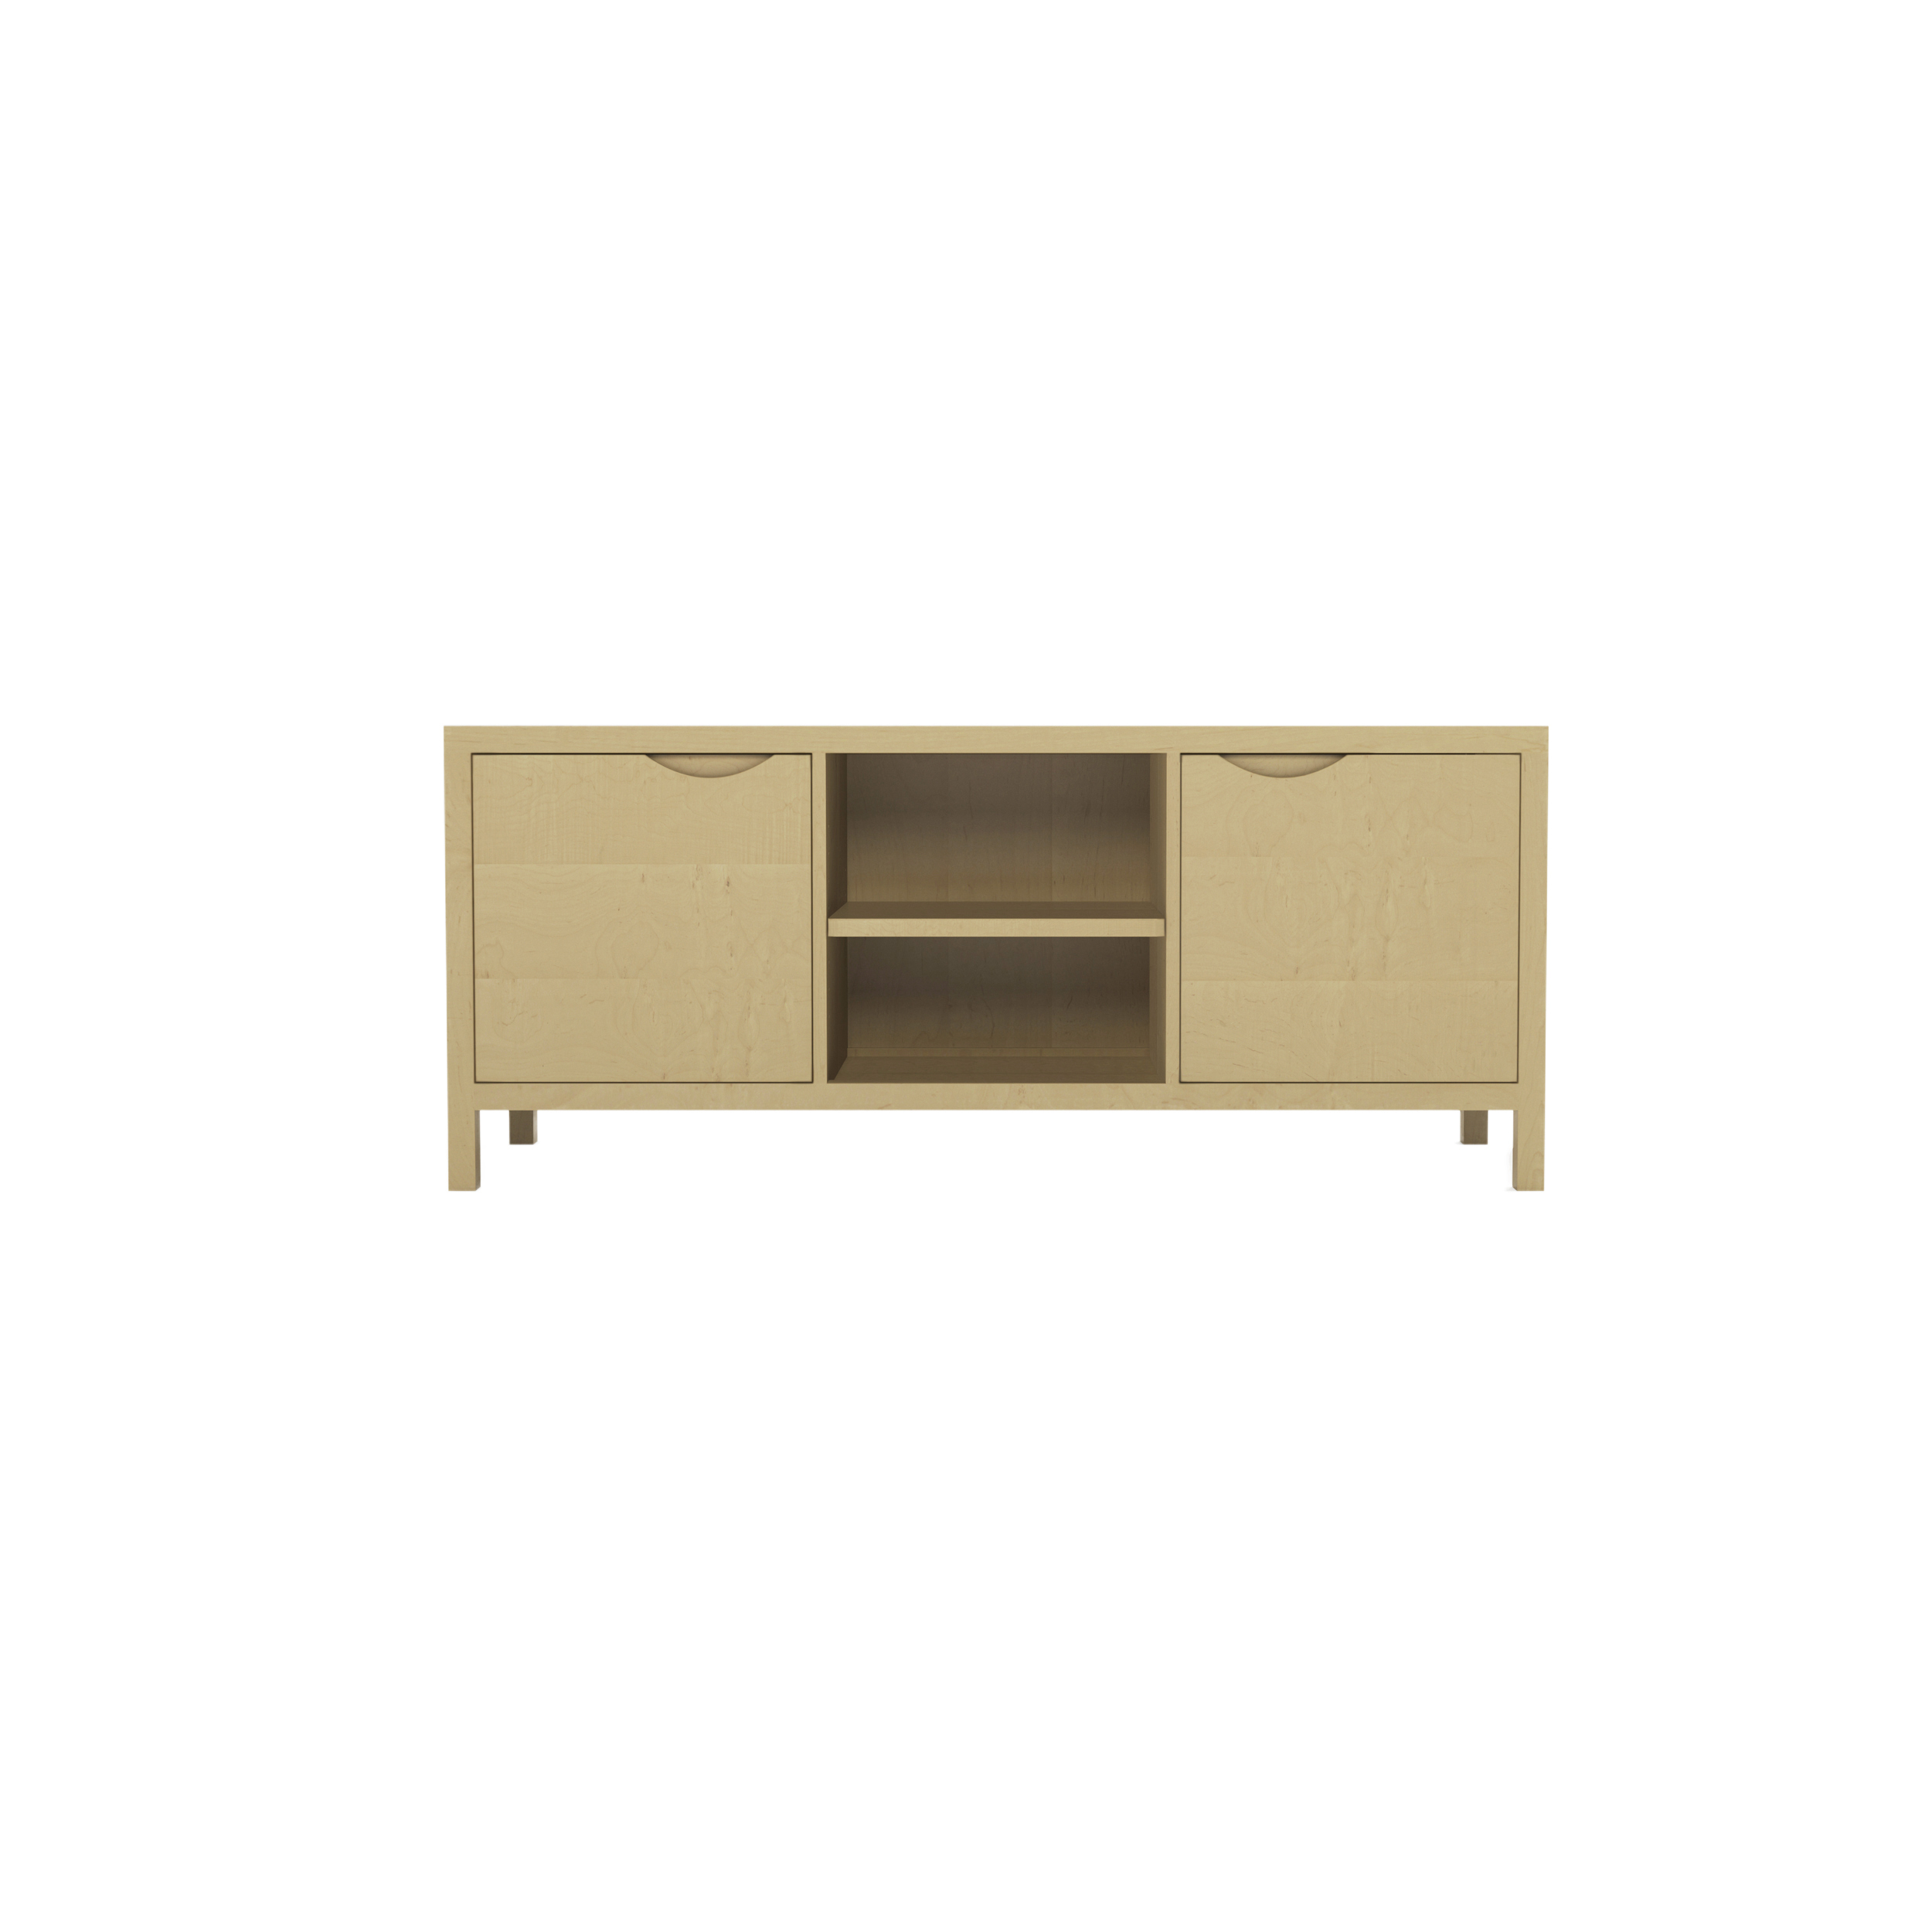 Series 353 Media Cabinet With Two Doors At 60″ In Width